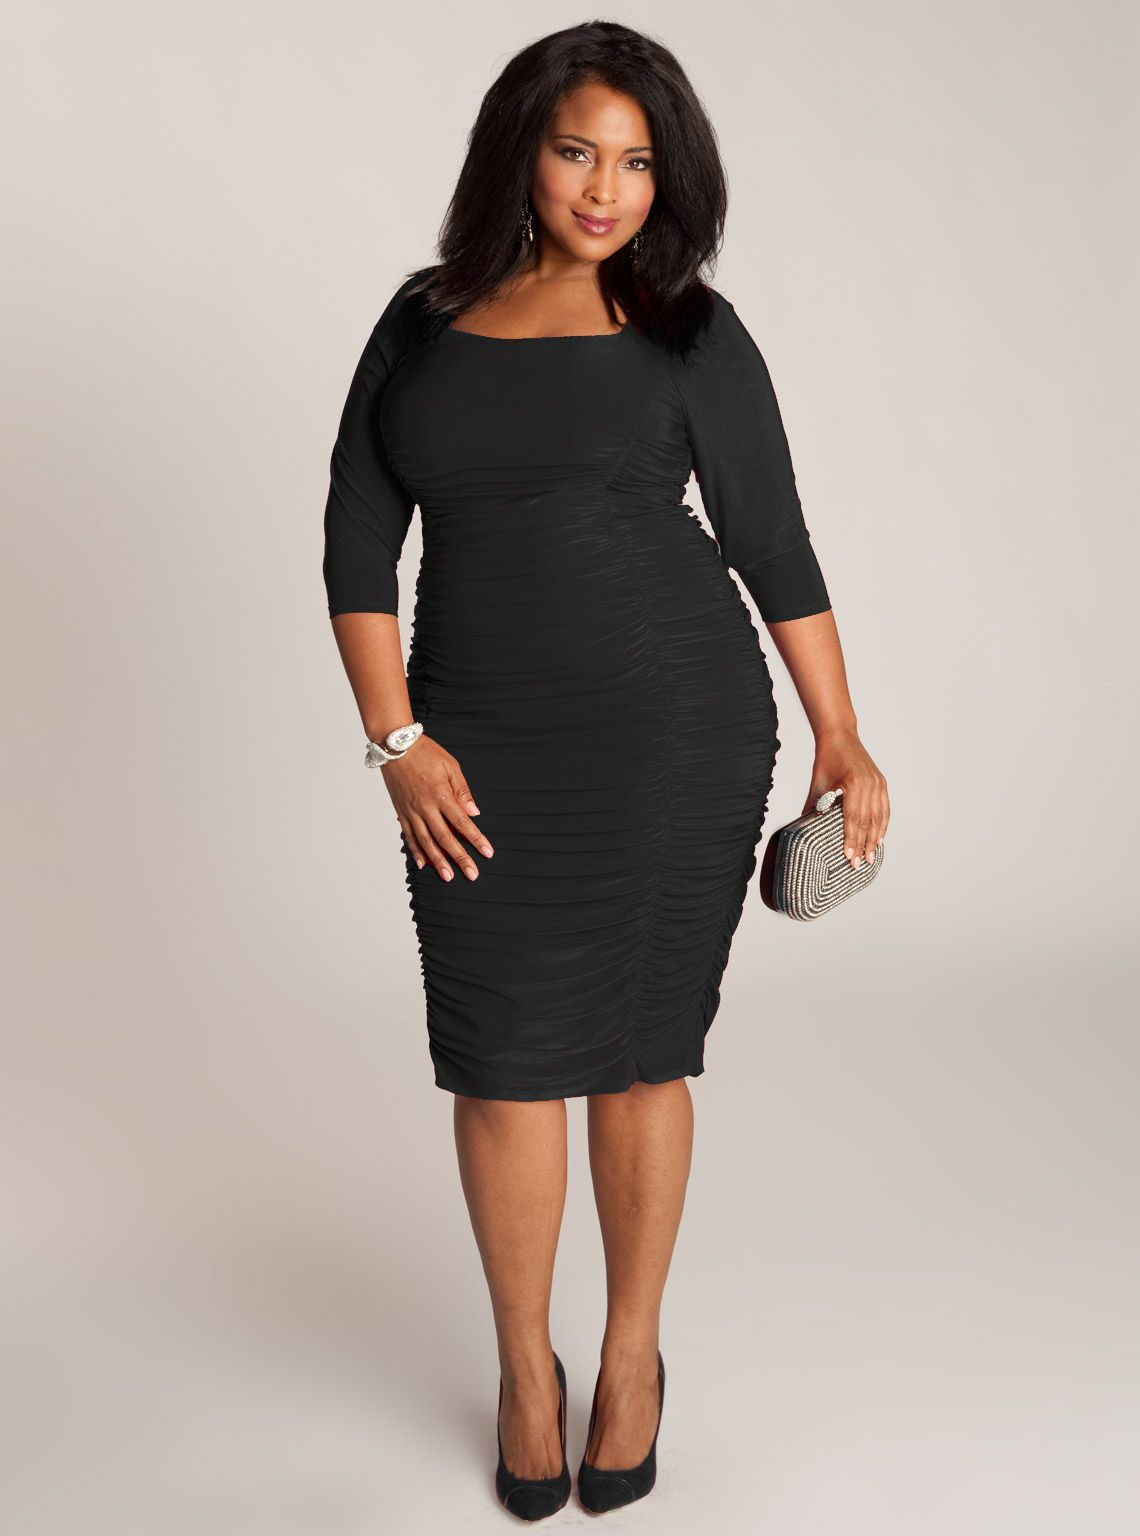 Felina Plus Size Dress In Black Little Bit Bigger Is A Little Bit